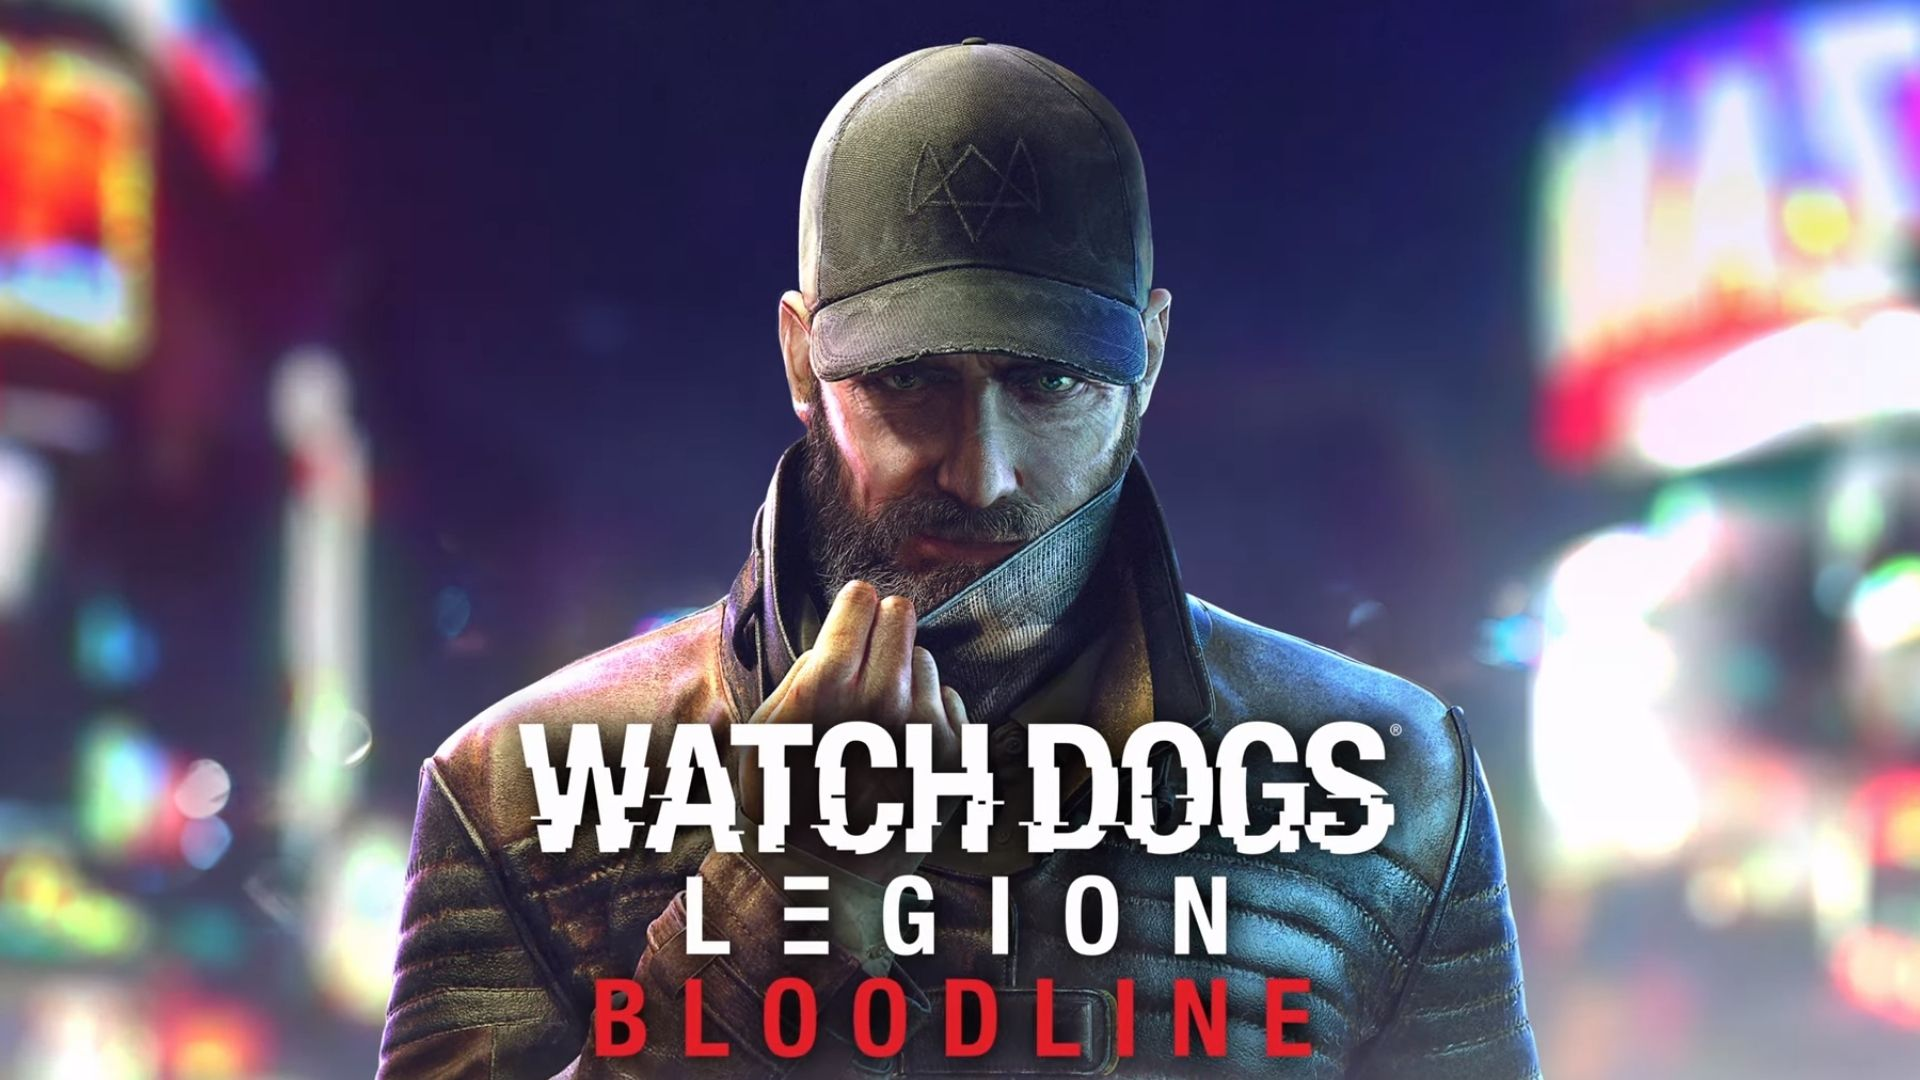 Aiden Pearce in Watch Dogs Legion